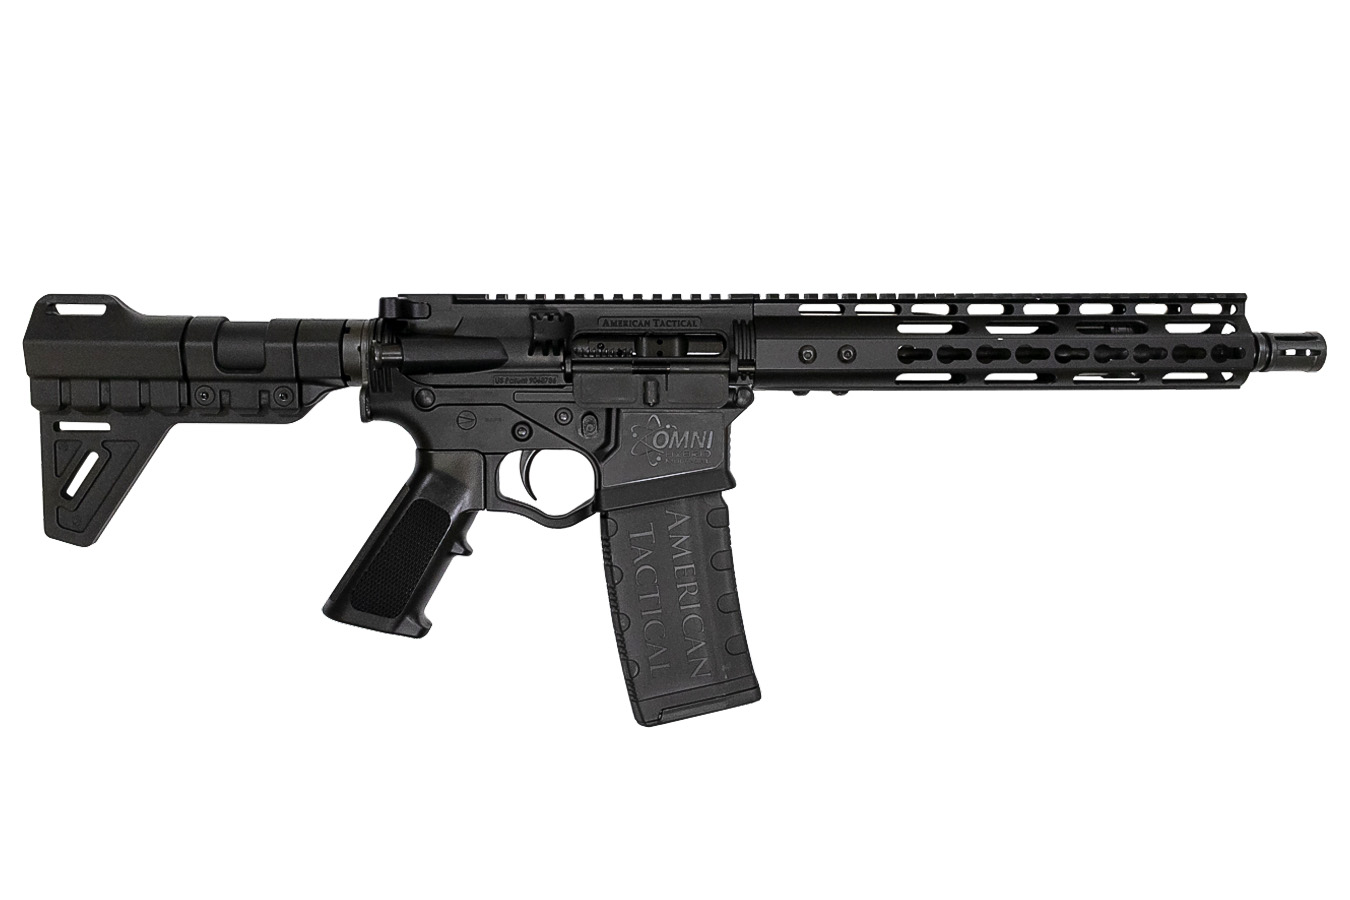 No. 3 Best Selling: ATI OMNI HYBRID MAXX 5.56MM AR PISTOL